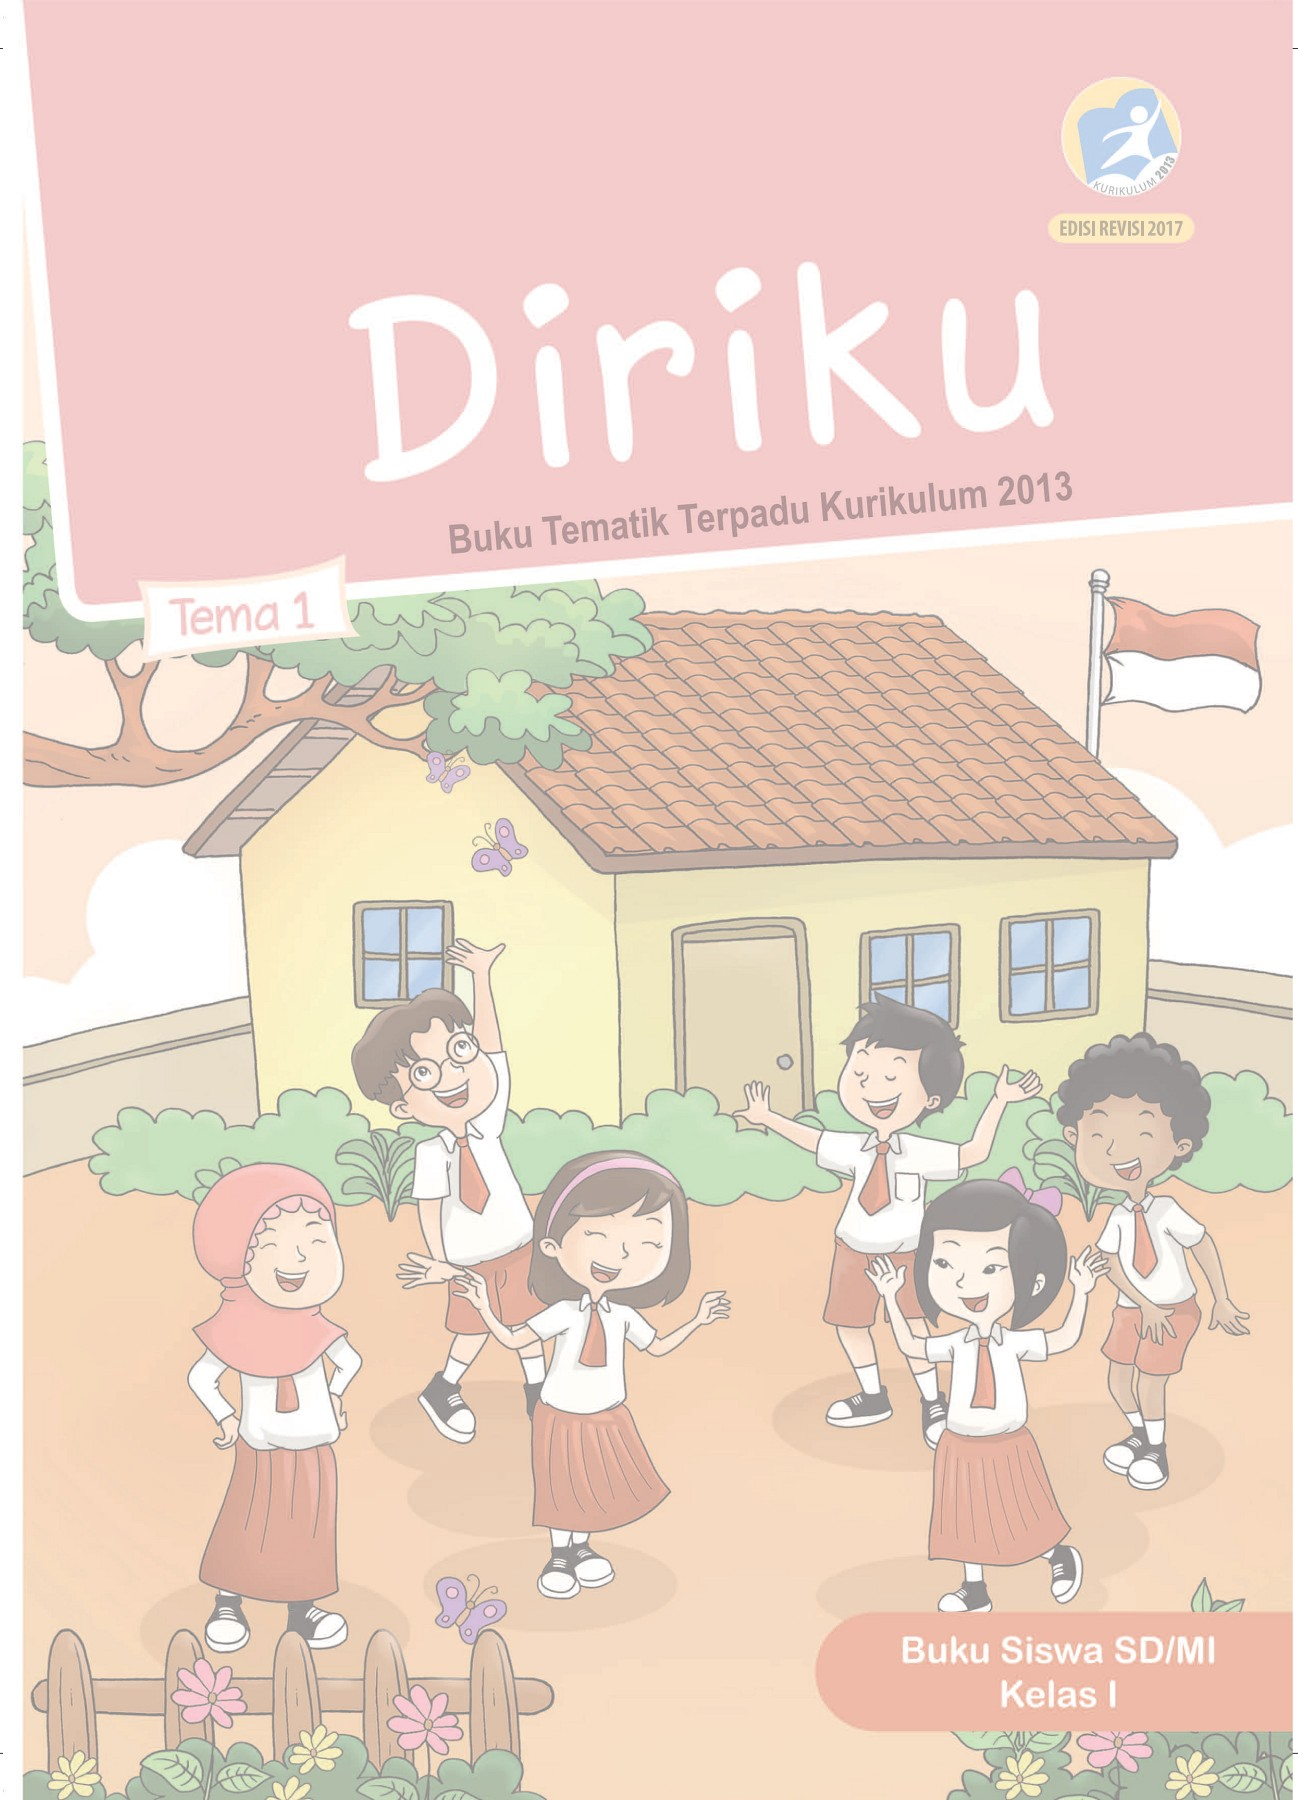 Download Buku Tema 1 Kelas 1 Sd : download, kelas, Siswa, Kelas, Revisi, Datadikdasmen.com, Pages, Download, FlipHTML5